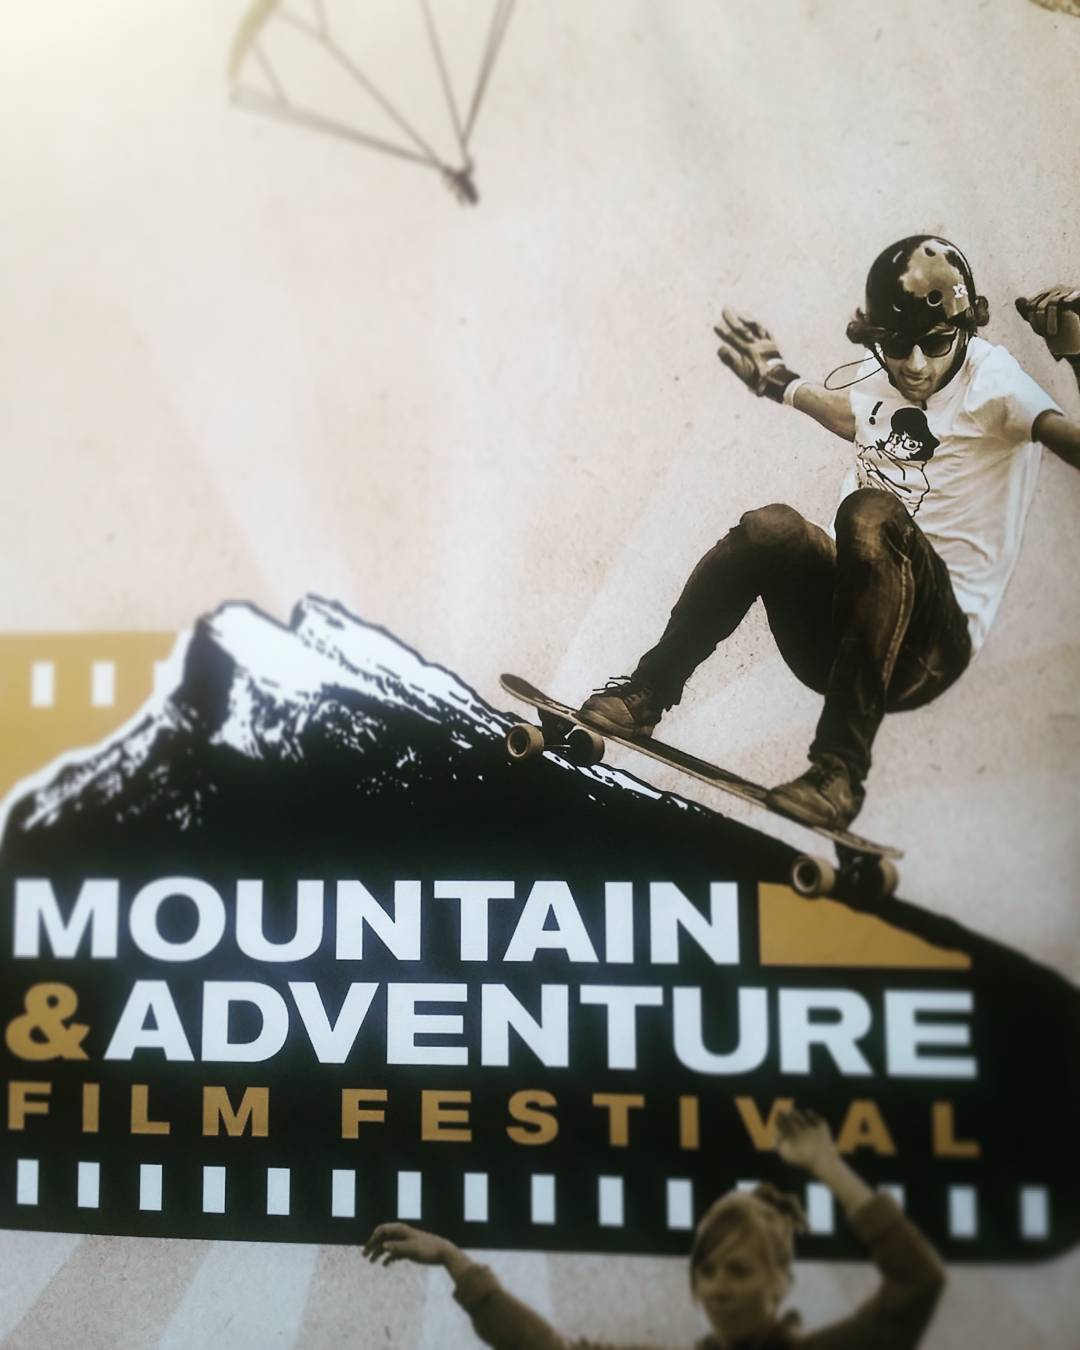 Our boy @ari_shark ripping and dipping on the poster for the Mountain Adventure Film Festival!  We're out here in Big Bear to support Ari for the premiere of The Gel Lab documentary, as well as tell him that he is a great DJ but should probably play...